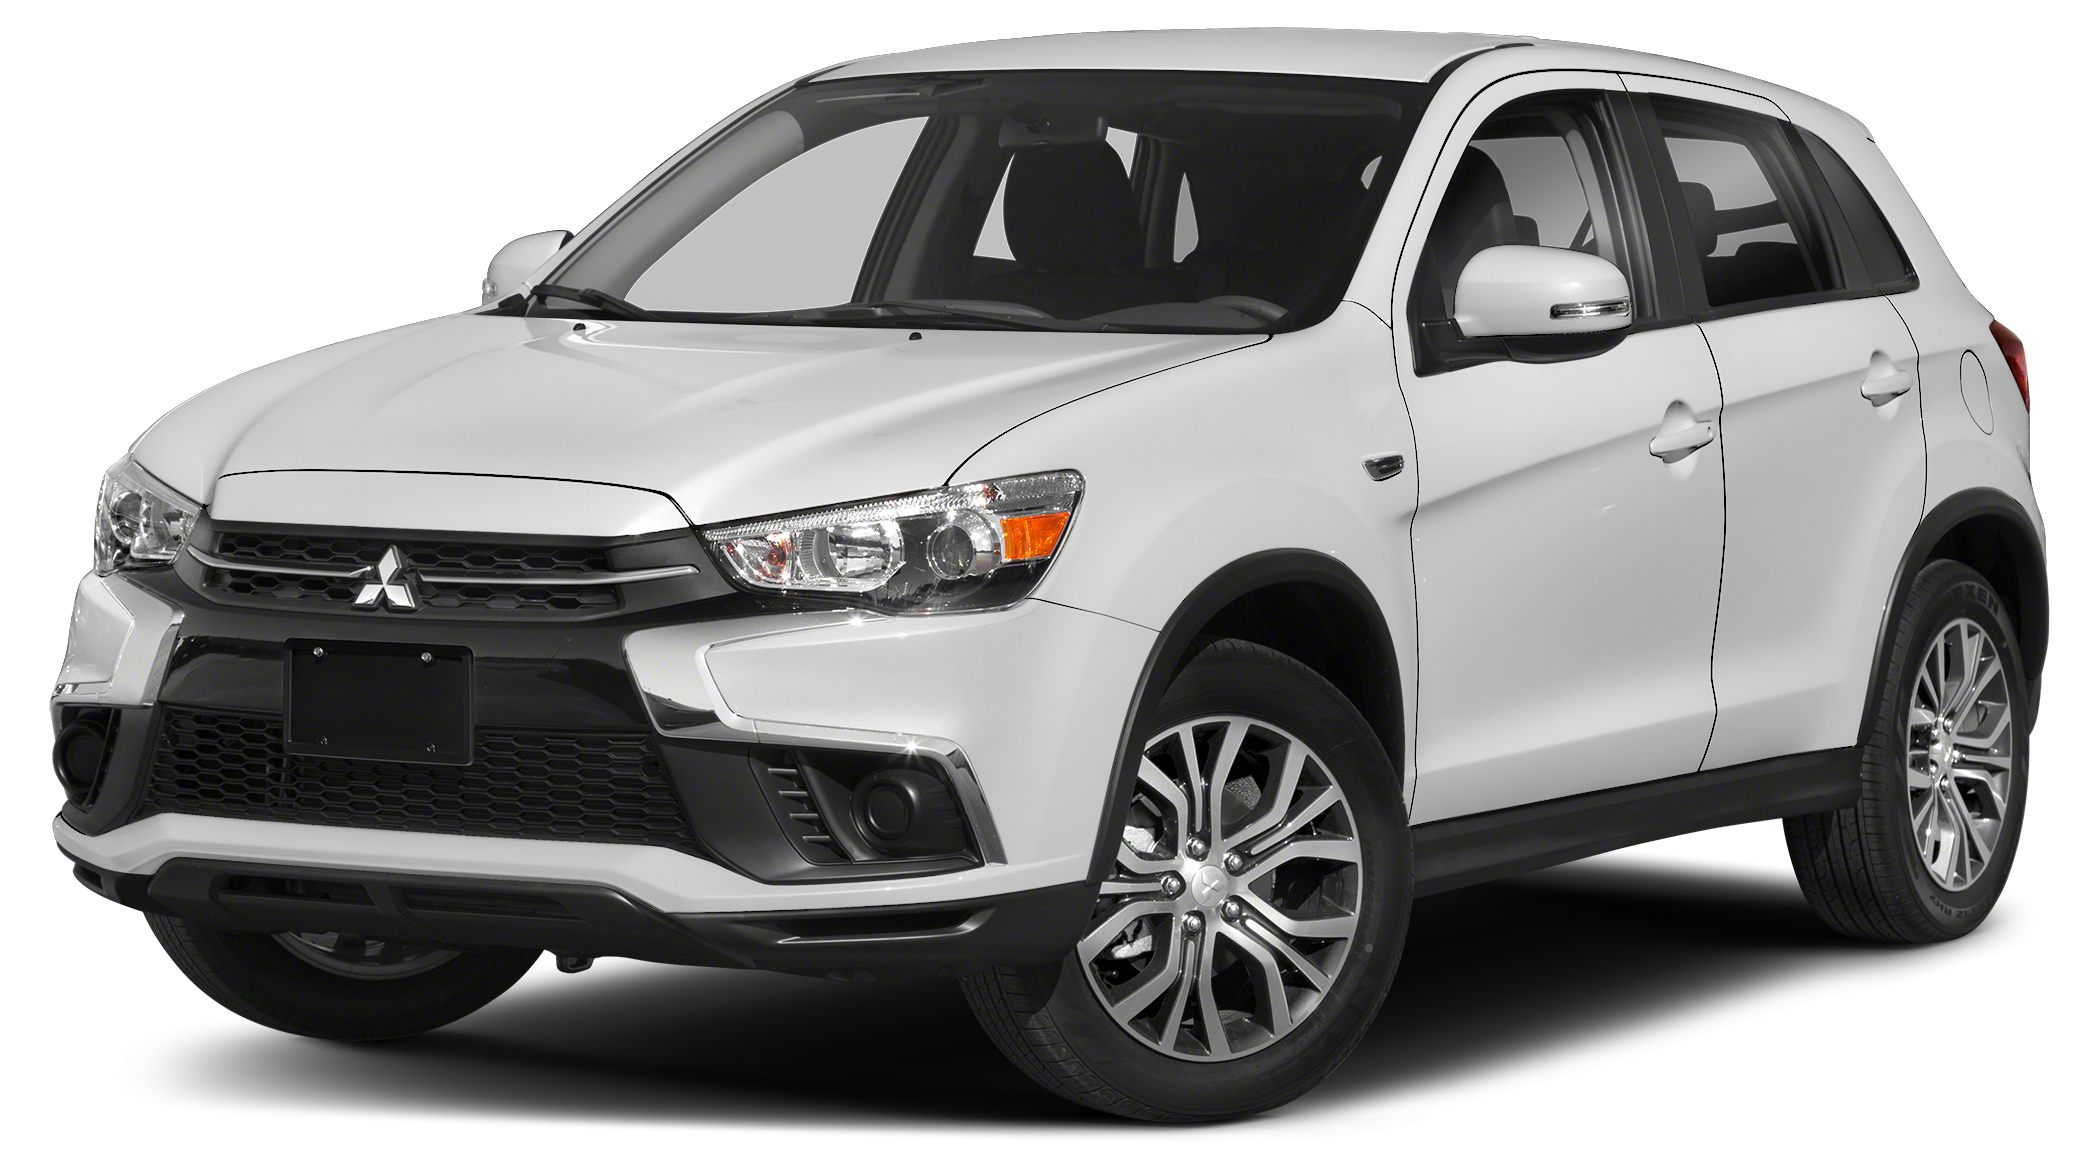 2018 Mitsubishi Outlander Sport 20 ES ACCY CARPETED FLOORMATS AND PORTFOLIO Miles 0Color All